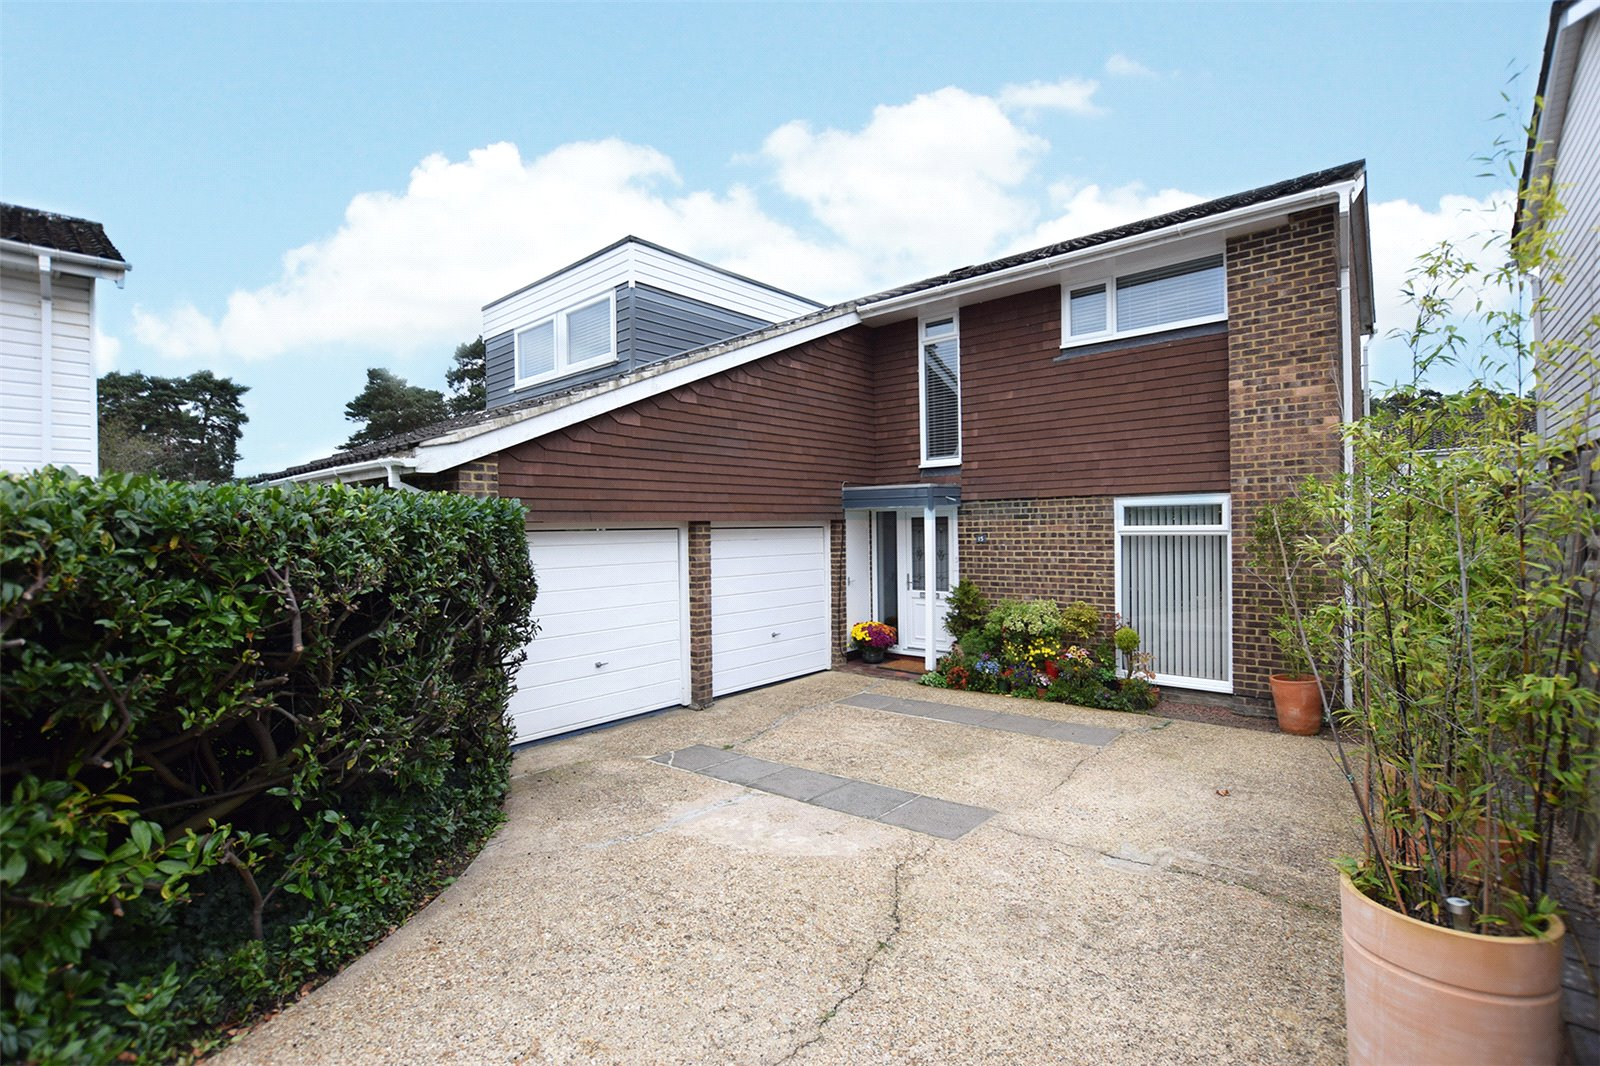 4 Bedrooms Detached House for sale in Qualitas, Bracknell, Berkshire, RG12